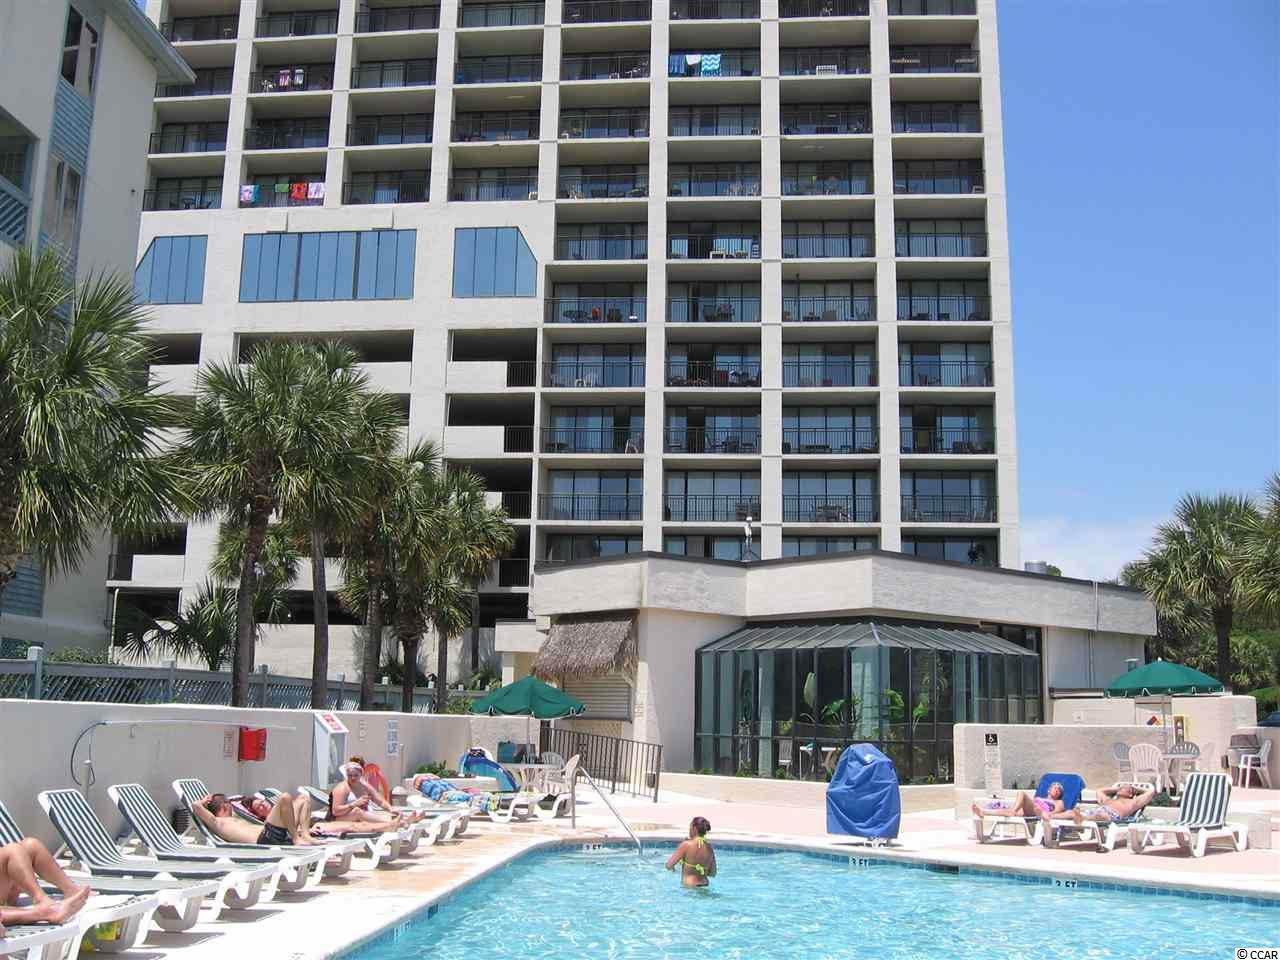 Additional photo for property listing at 5523 N. Ocean Blvd. 5523 N. Ocean Blvd. Myrtle Beach, South Carolina 29577 United States